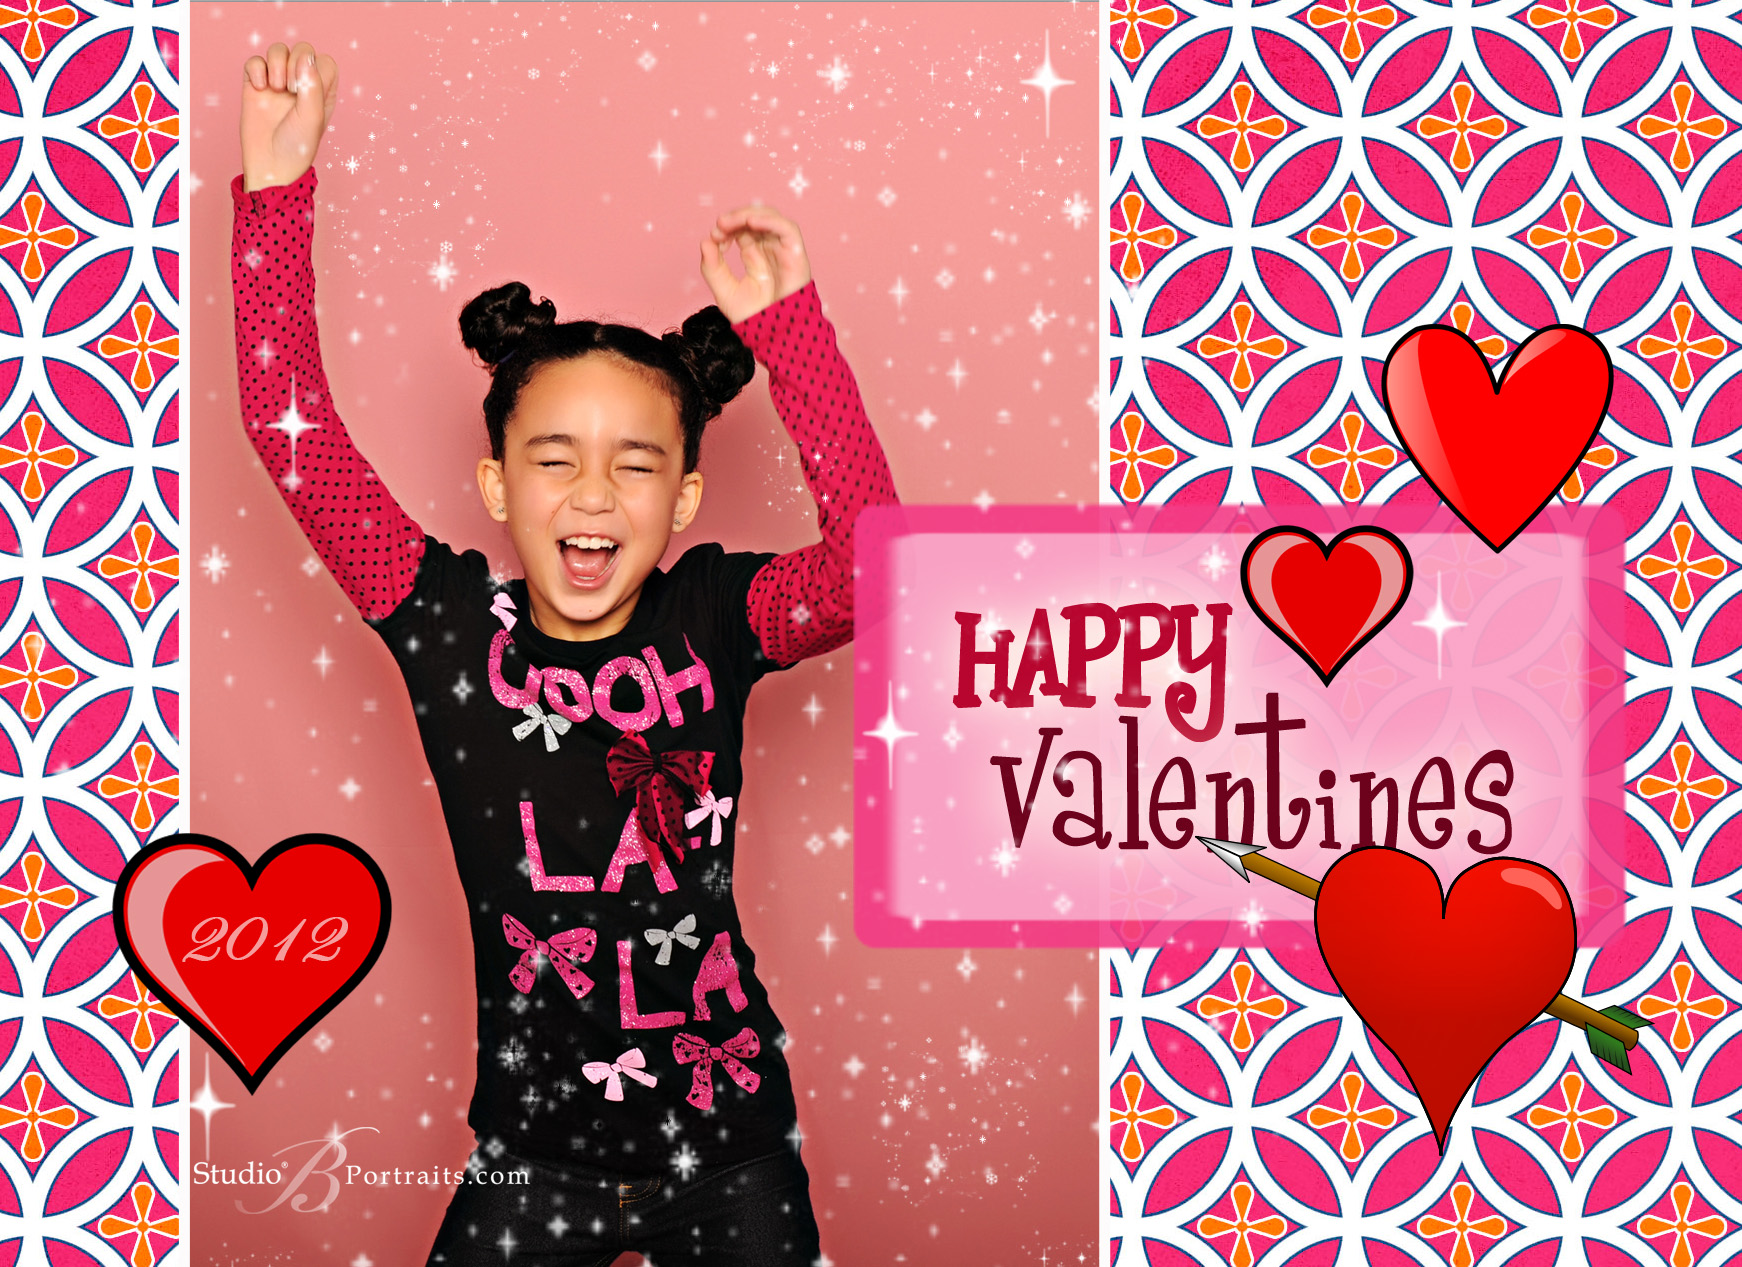 Photo Valentine cards at Studio B Portraits in Issaquah